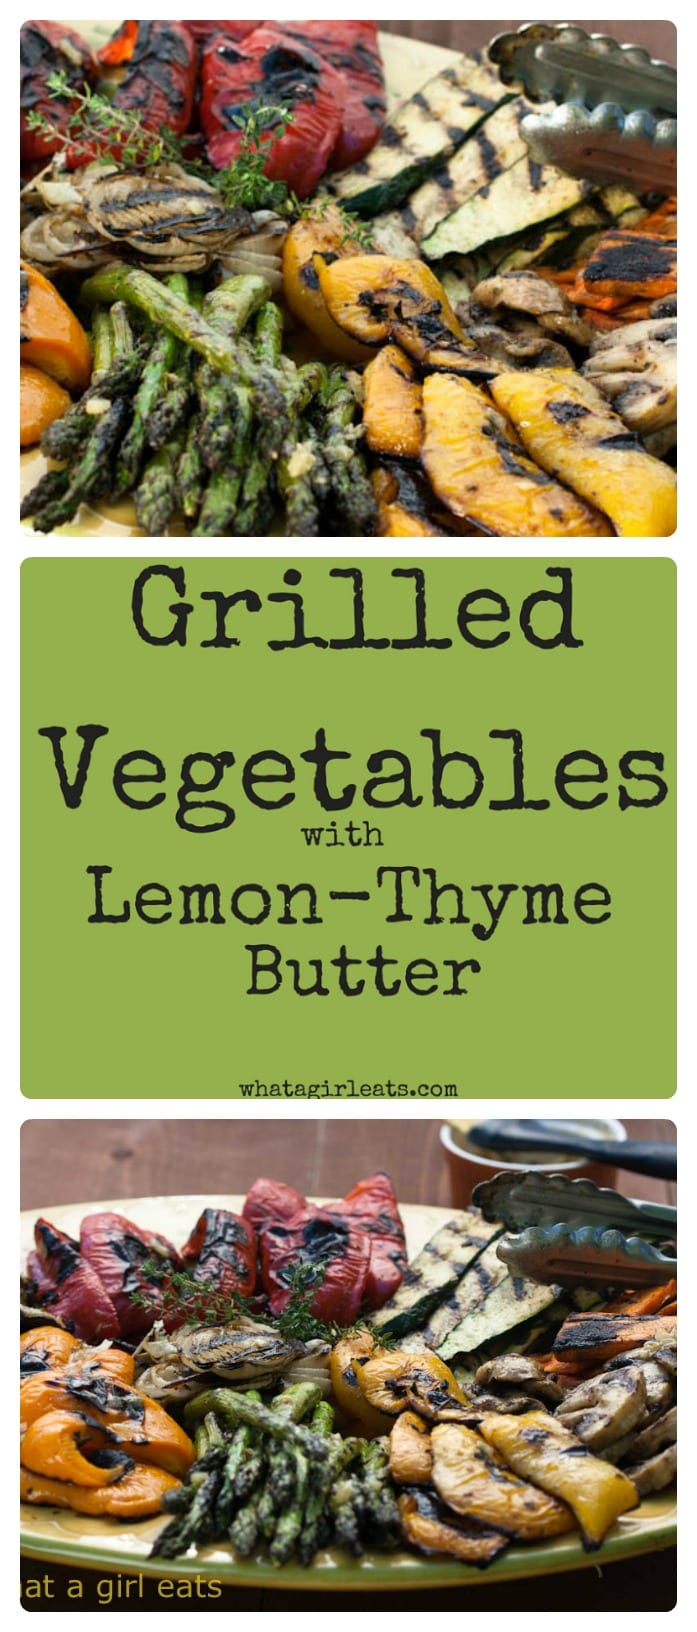 Grilled vegetables with Lemon-Thyme basting butter. Whole30 compliant, Paleo, gluten free, vegetarian and low-carb!